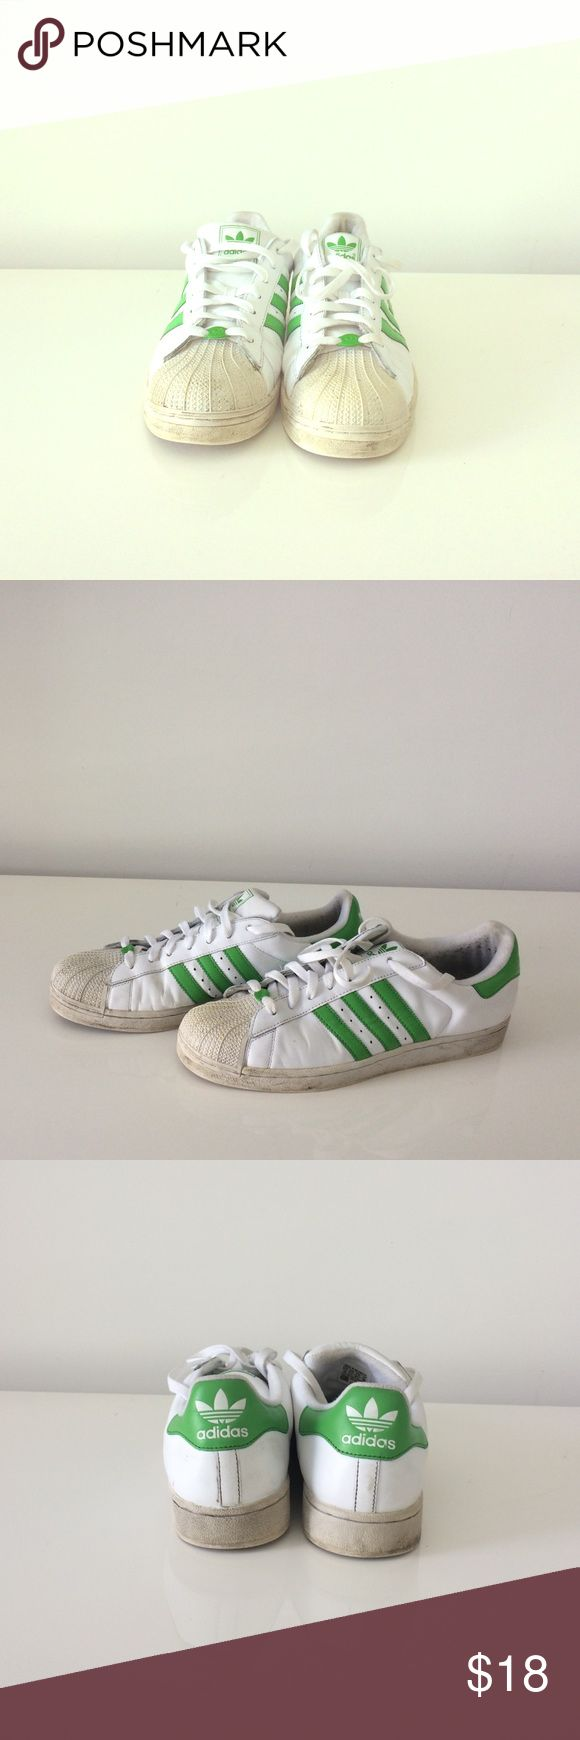 Adidas men's size 12 Adidas Superstar Men's shoes (Pin #723001) these shoes have been worn but still have a lot of life-with a little cleaning I think these would be good as almost new ...... priced to sell Adidas Shoes Athletic Shoes